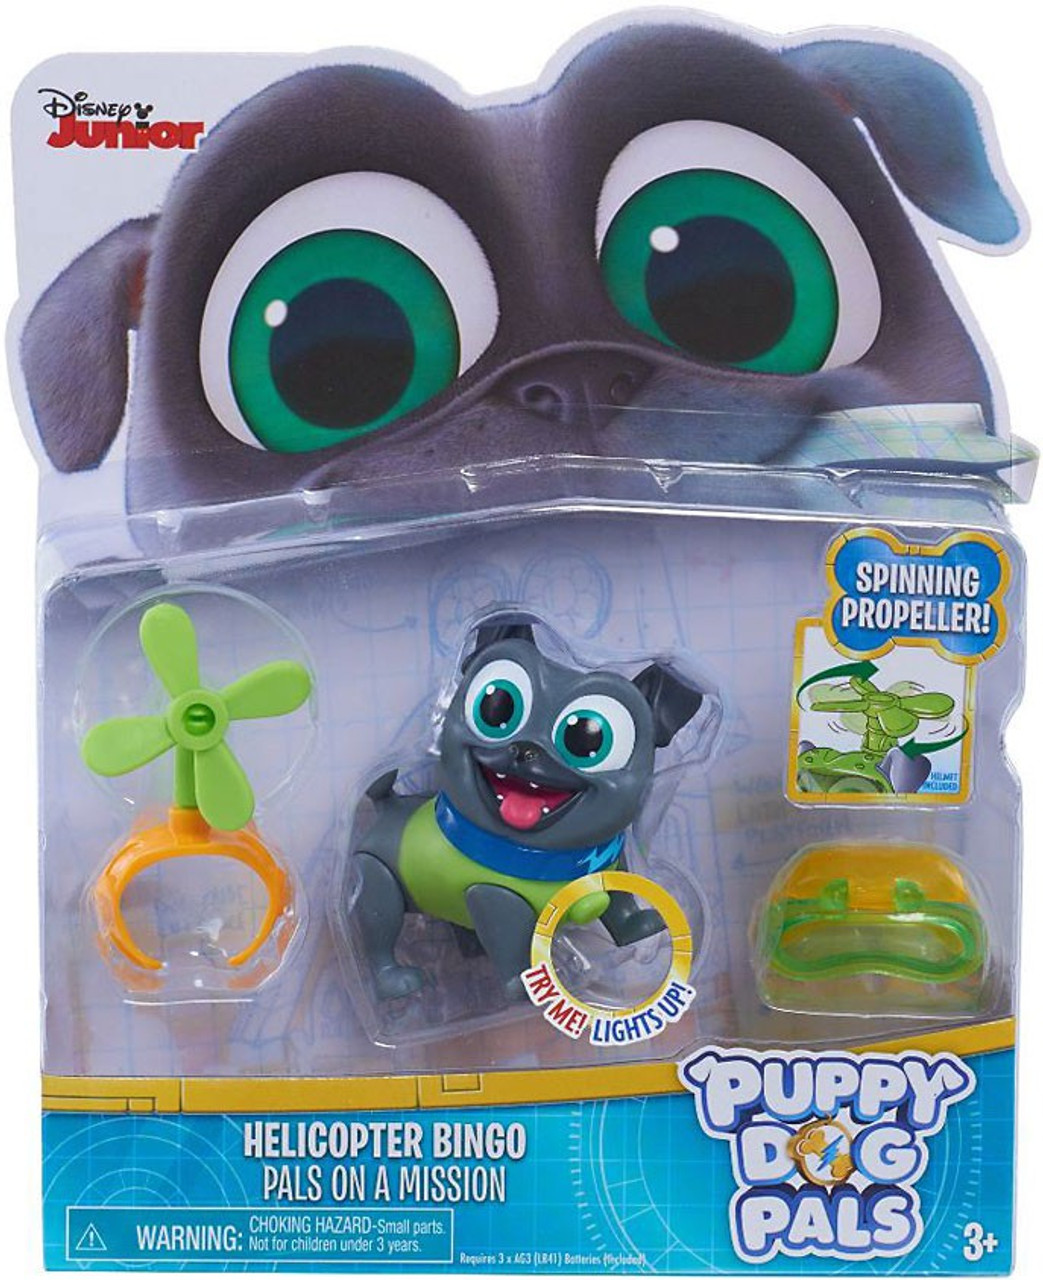 8e0440dde91 Disney Junior Puppy Dog Pals Light Up Pals On A Mission Helicopter Bingo  Action Figure Spinning Propeller Just Play - ToyWiz